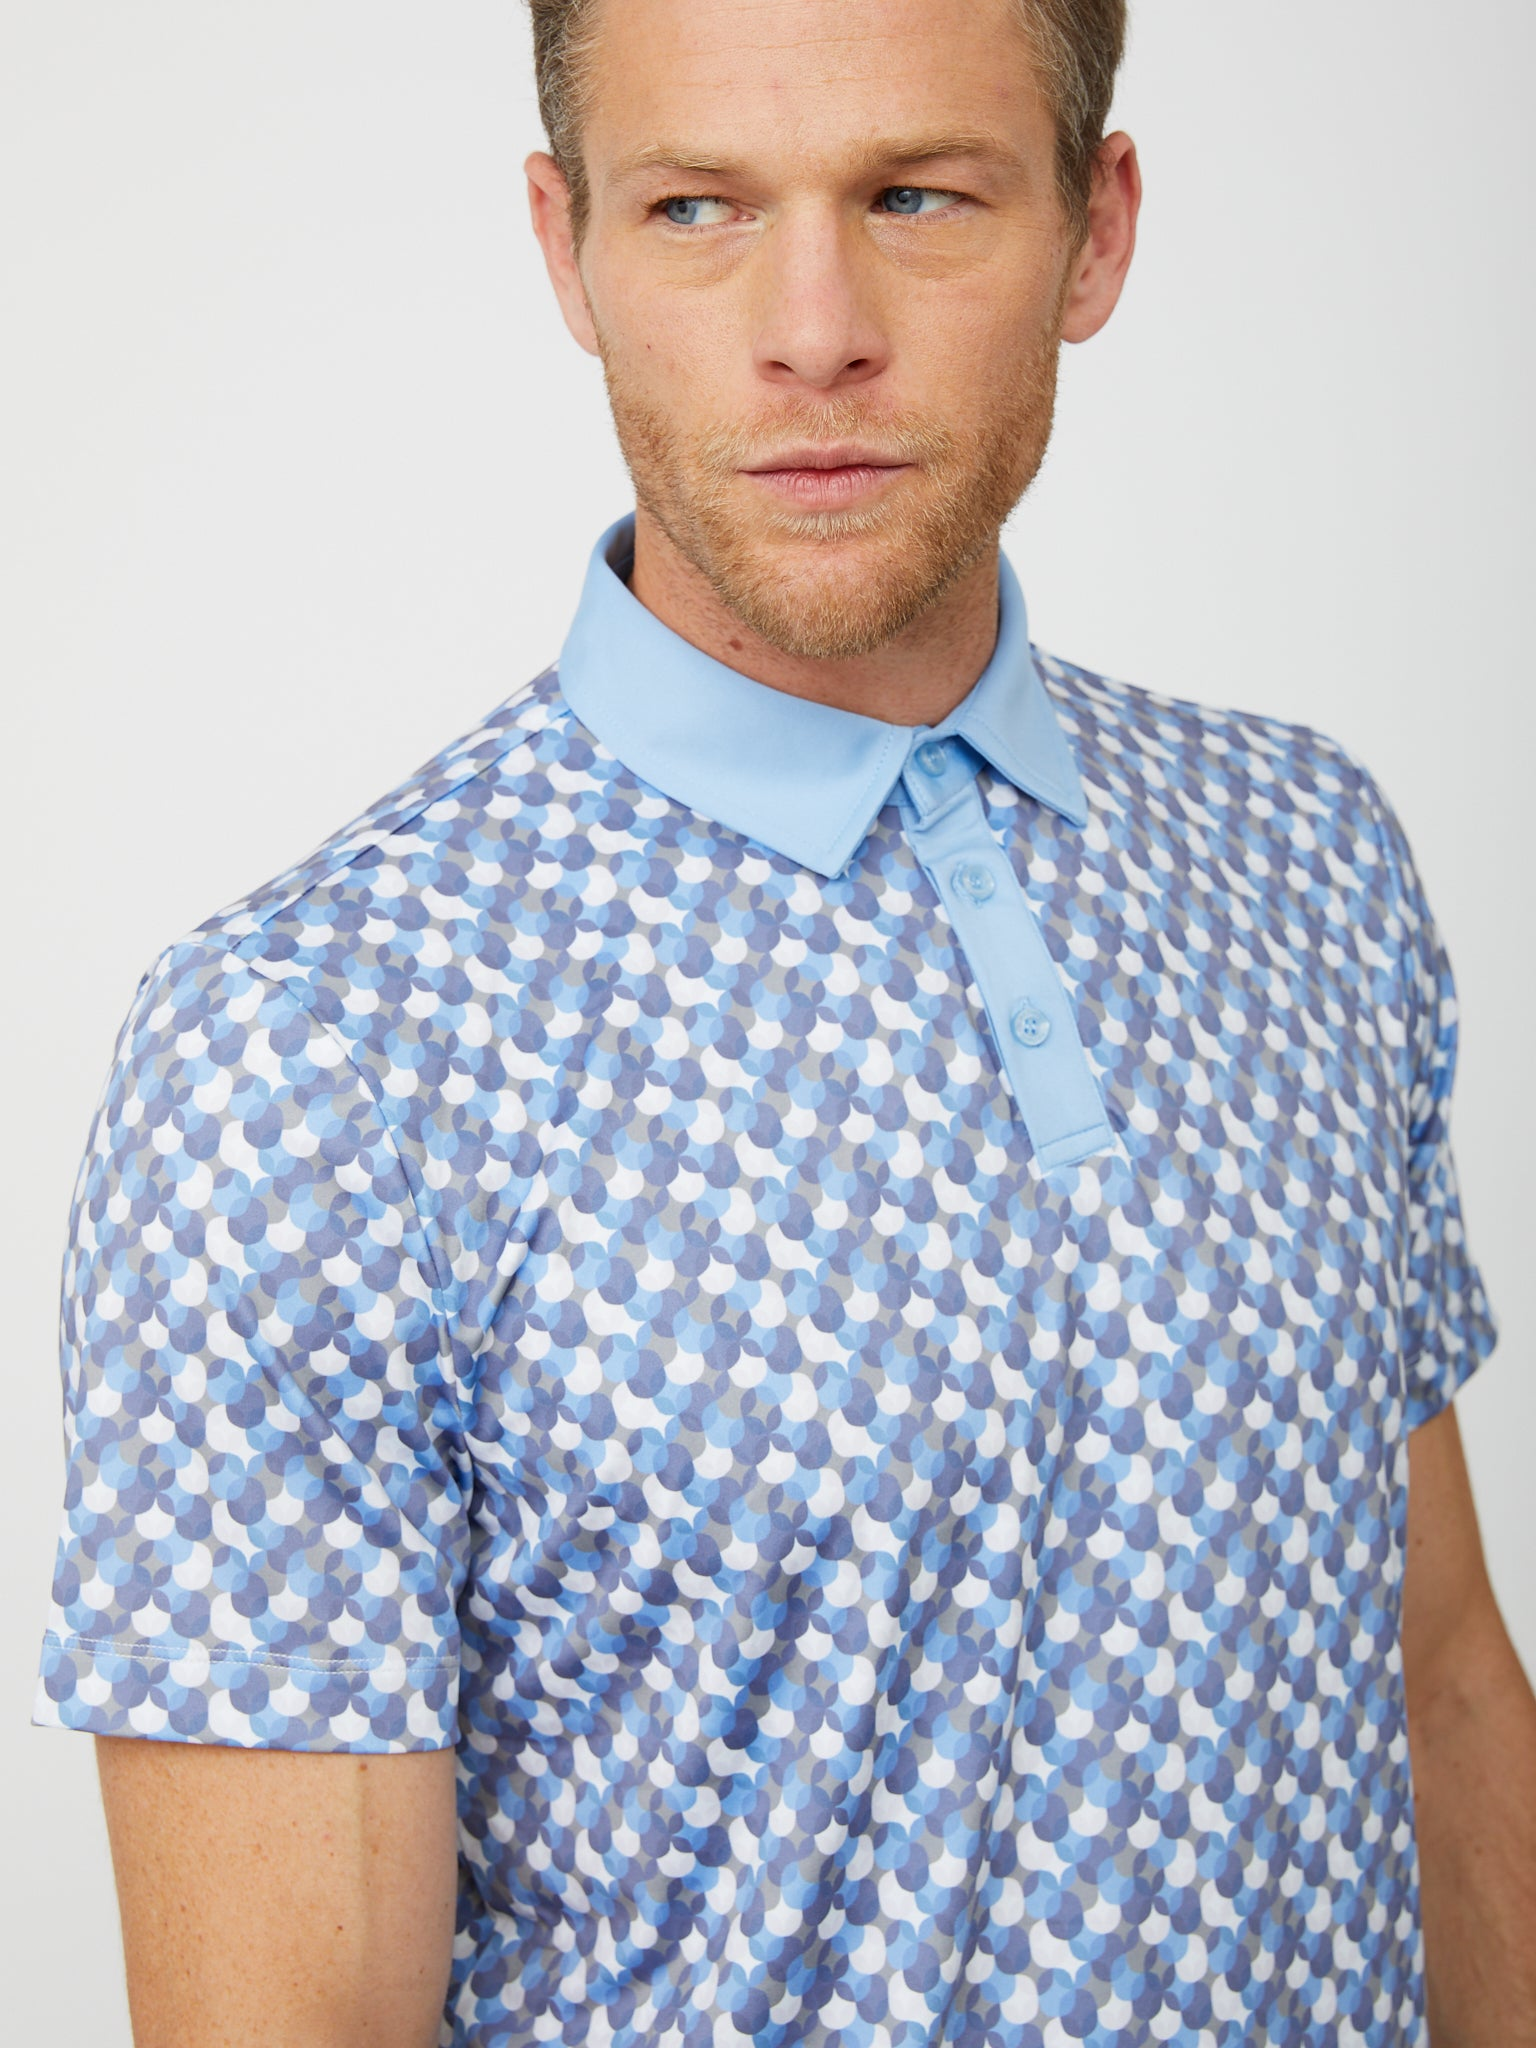 Exeter Polo in Placid Blue/Multi